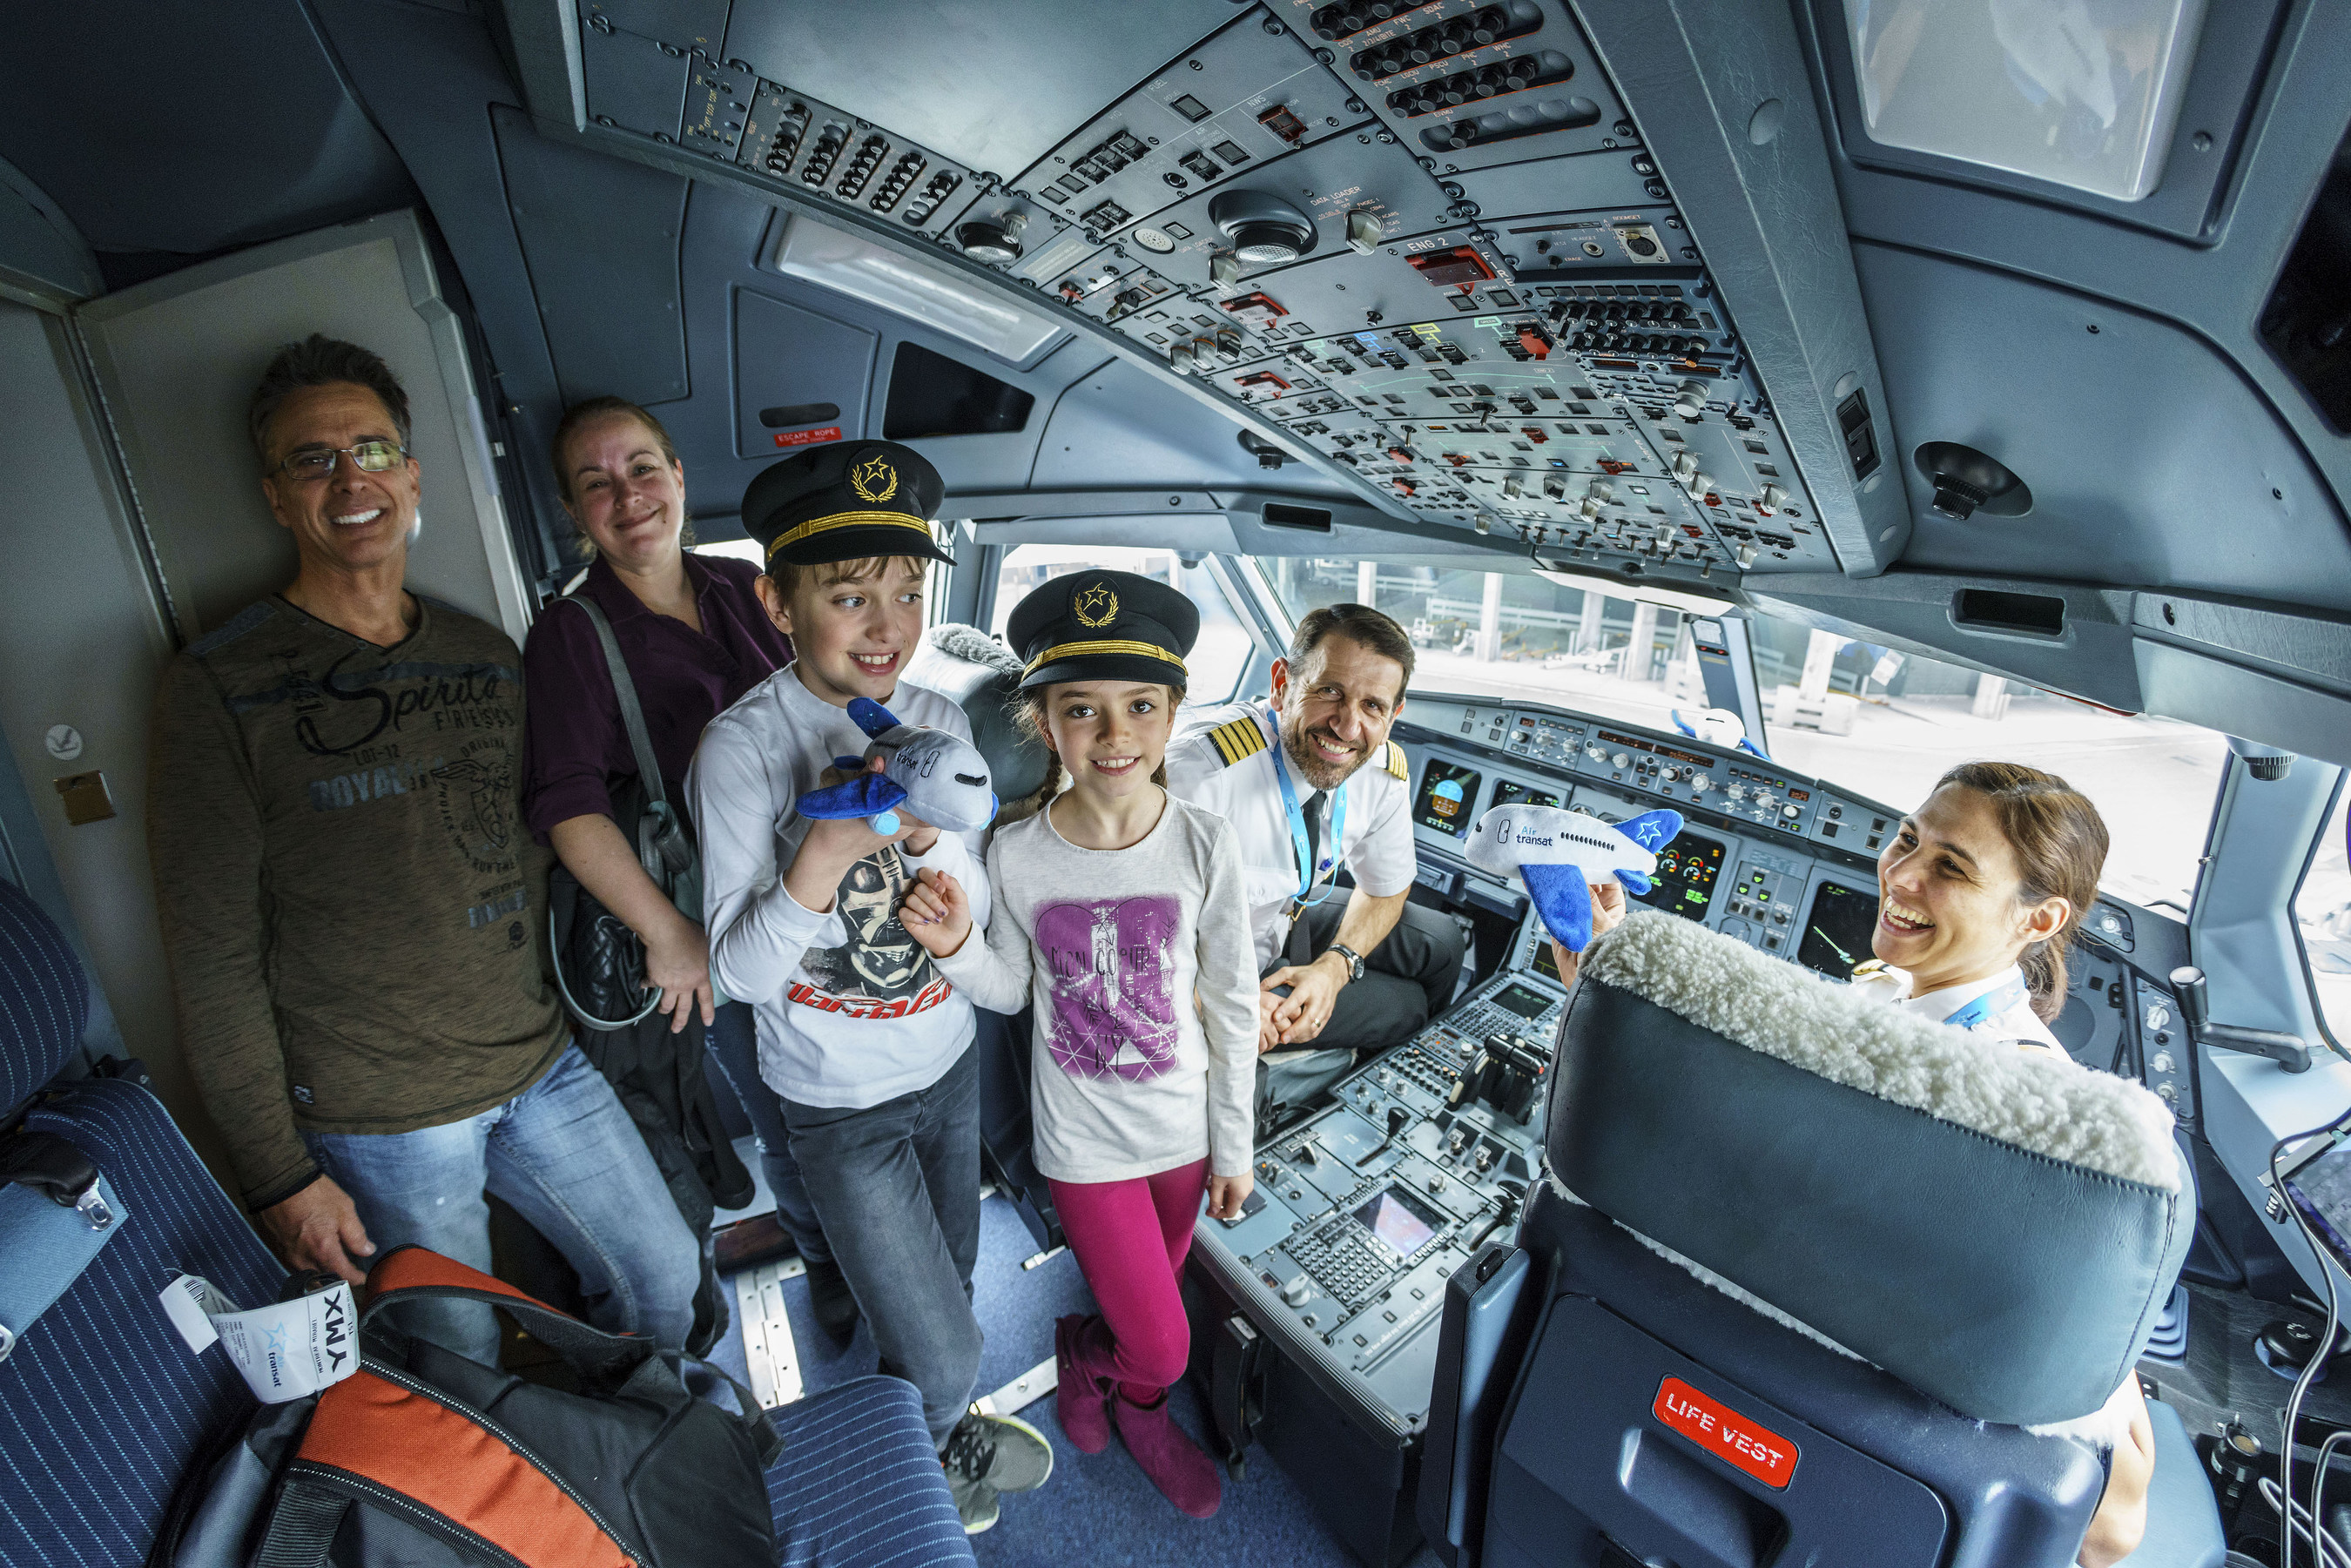 There were smiles all around during the 7th edition of the Premium Kids event held at Montréal-Trudeau airport. (CNW Group/Aéroports de Montréal)